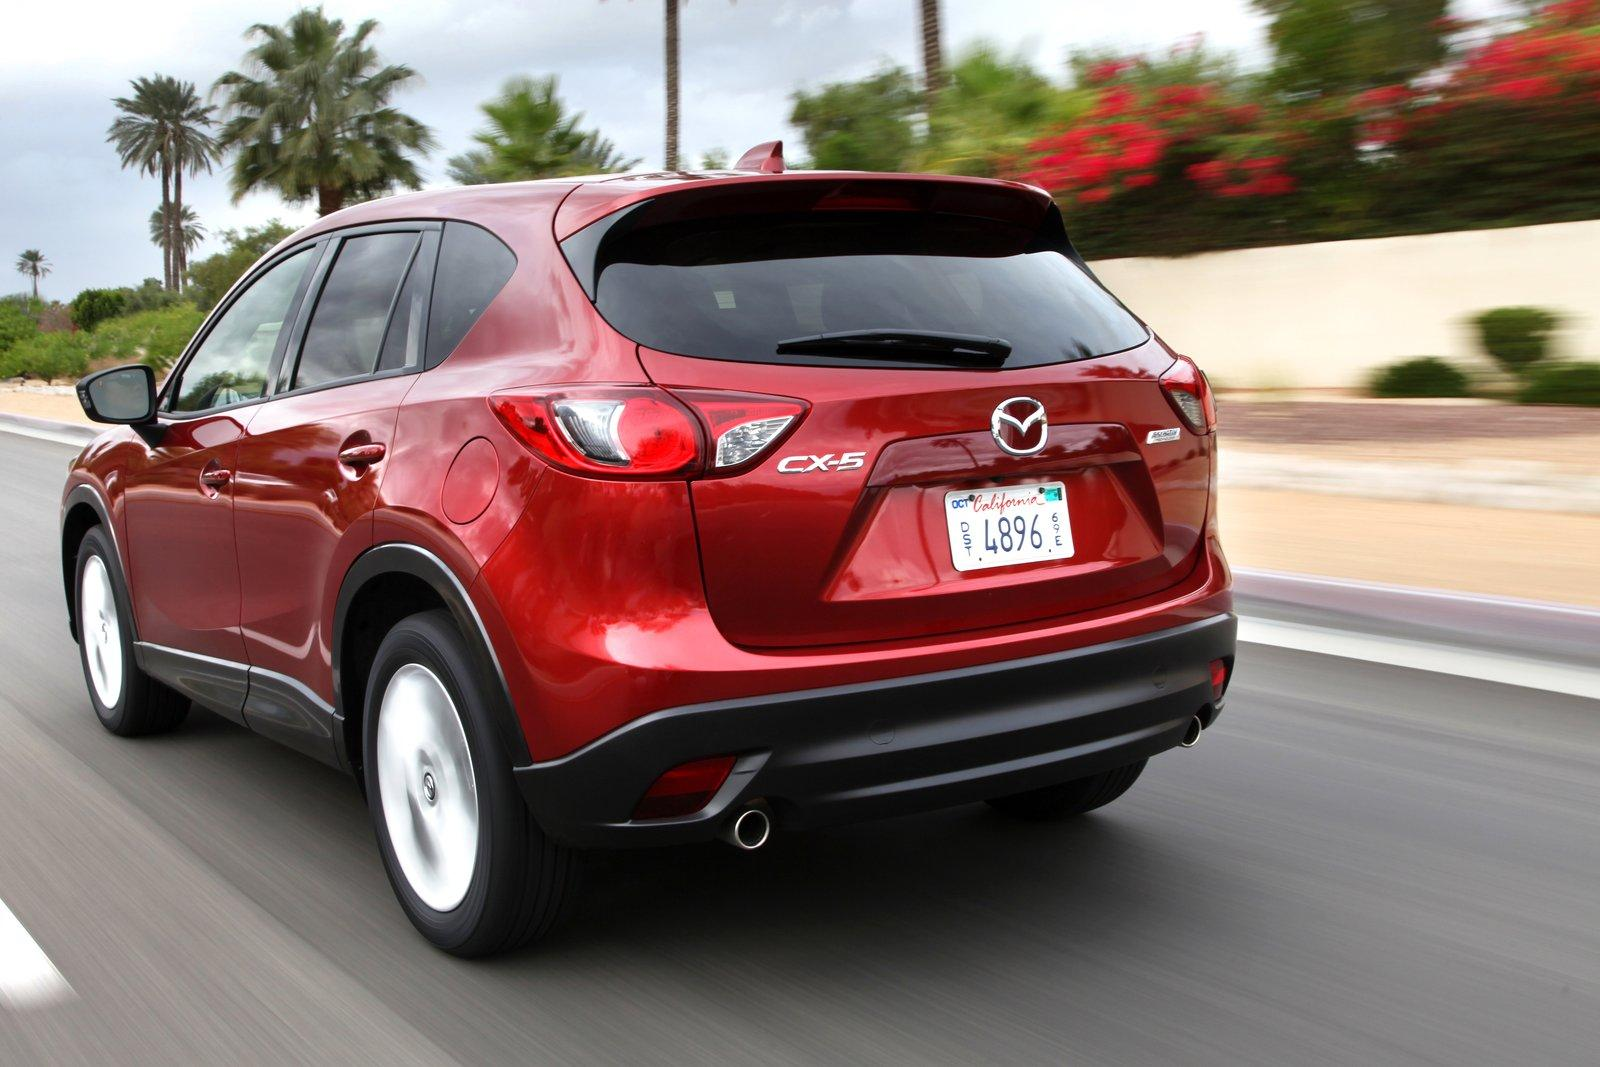 https://www.automobilesreview.com/gallery/2013-mazda-cx-5/2013-mazda-cx-5-07.jpg